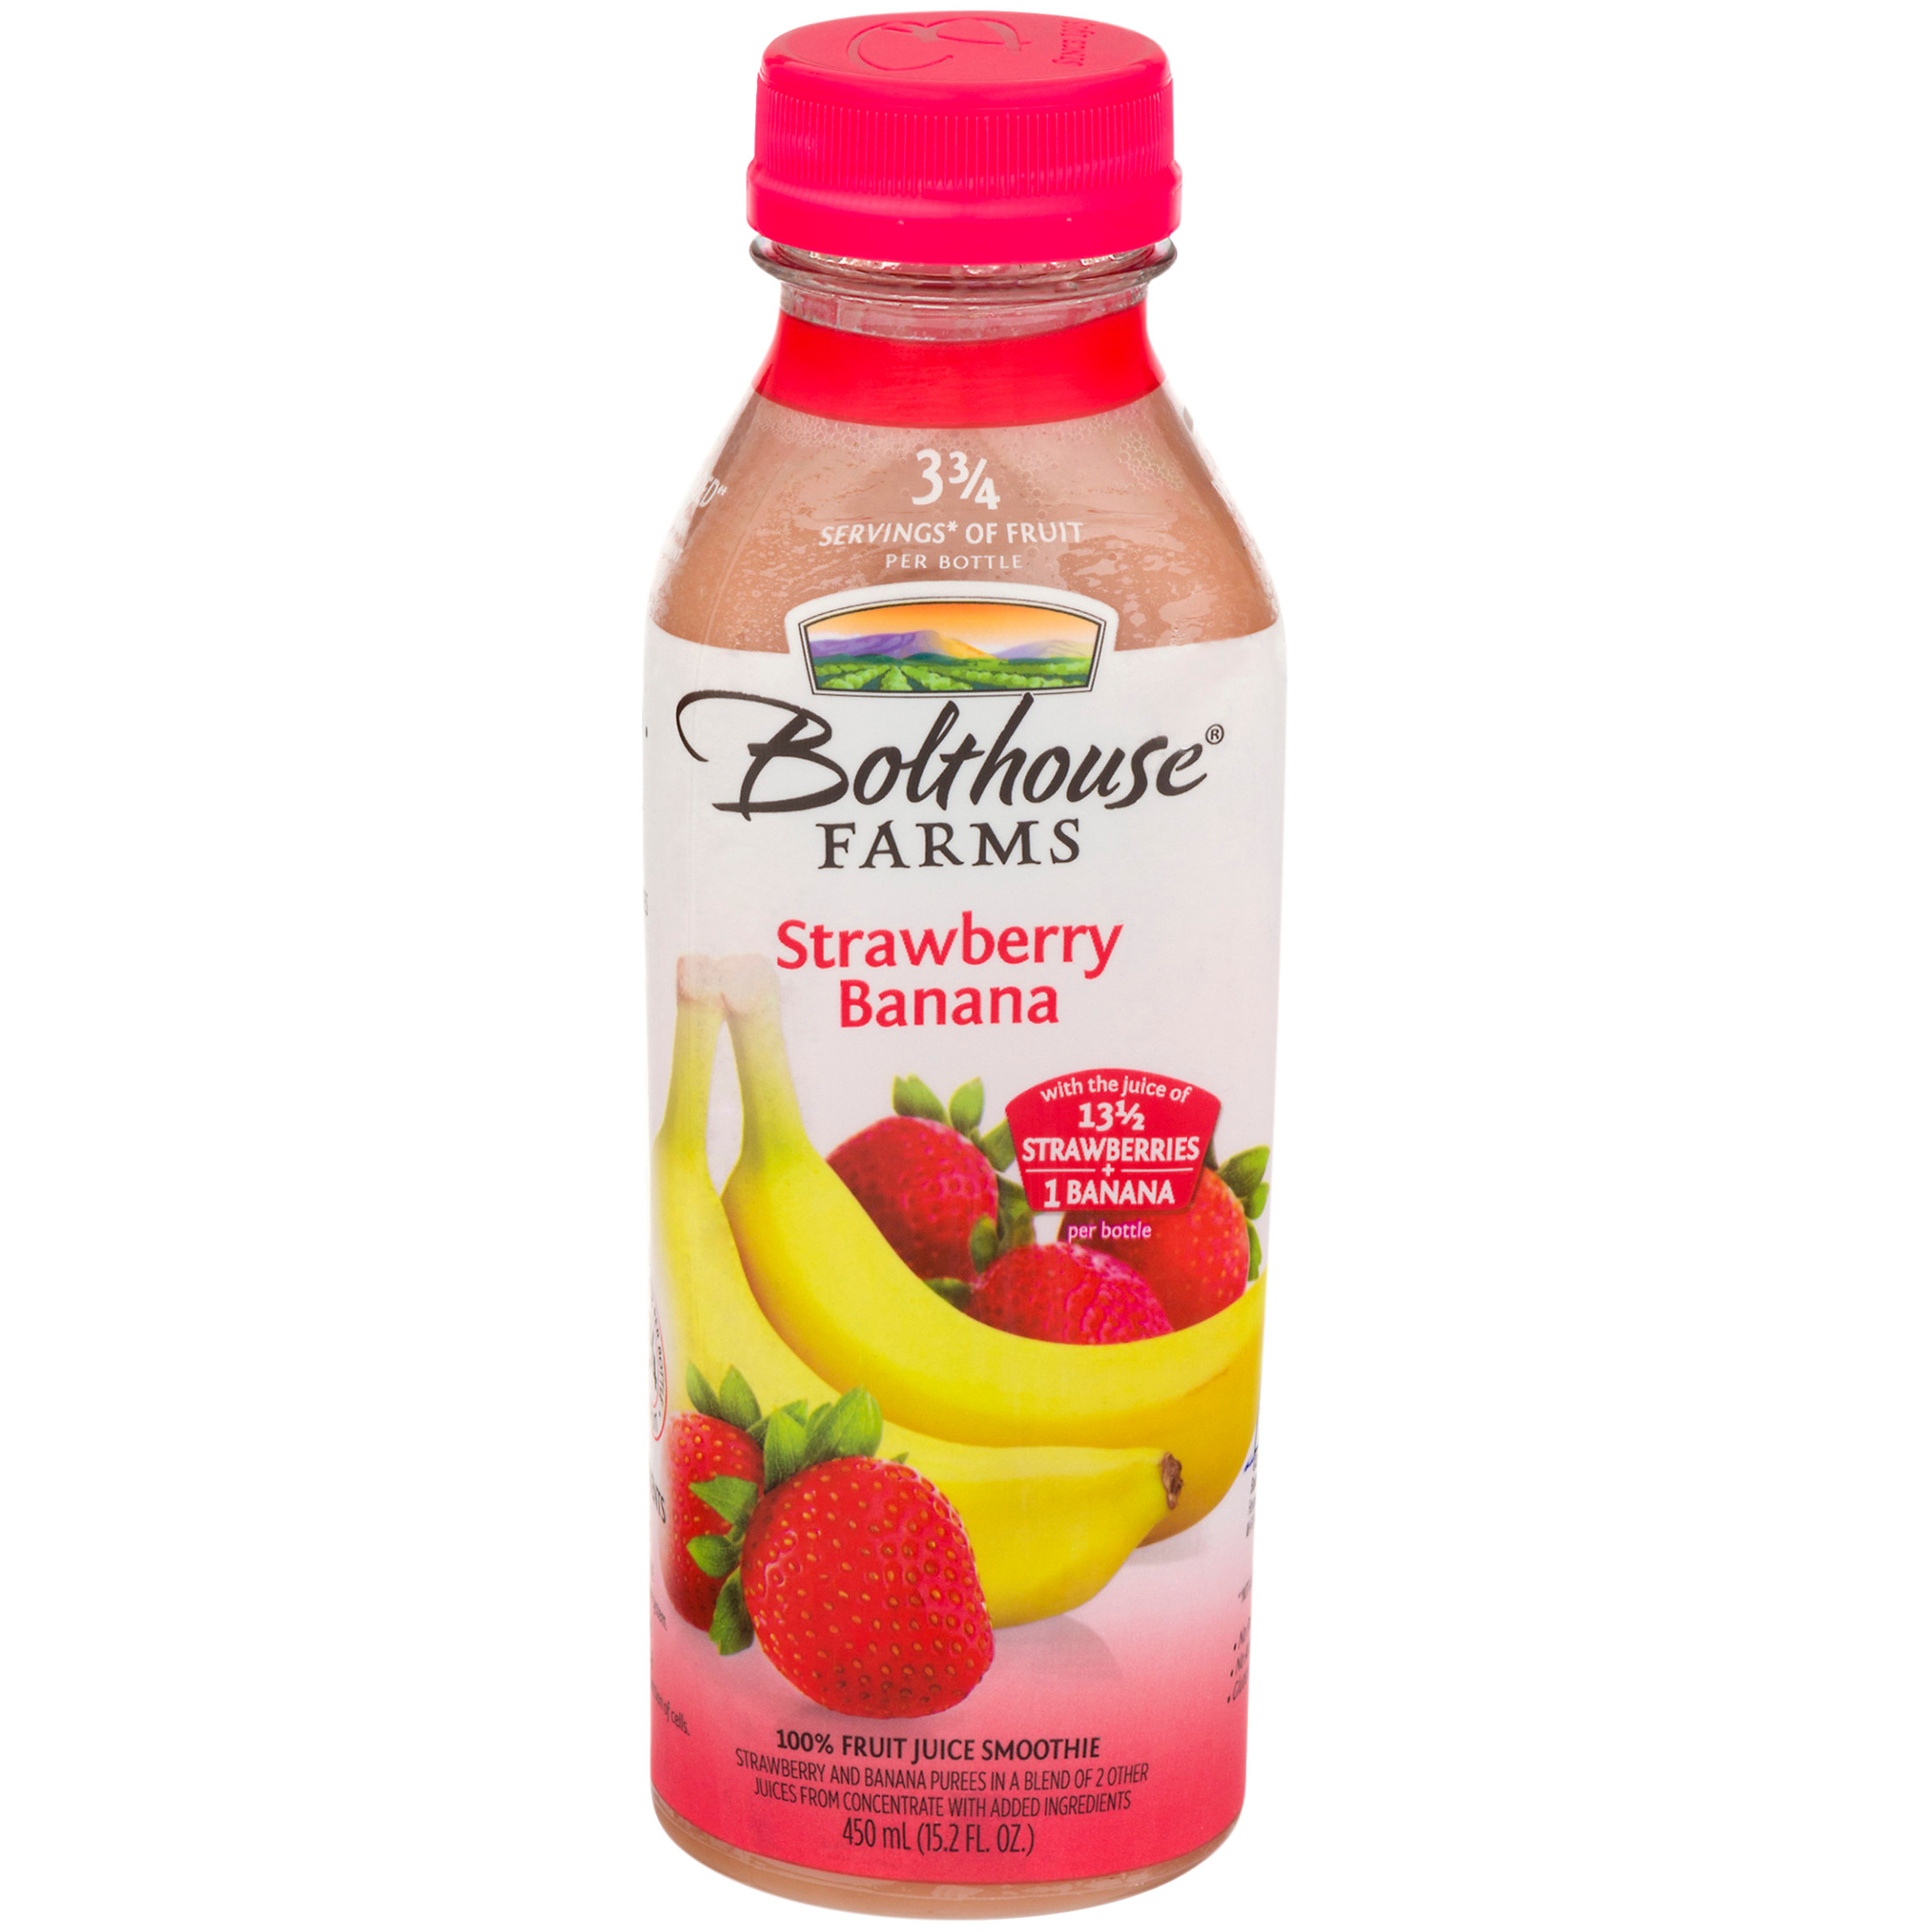 Are Bolthouse Farms Smoothies Healthy  Bolthouse Farms Fruit Smoothie Strawberry Banana 15 2 fl